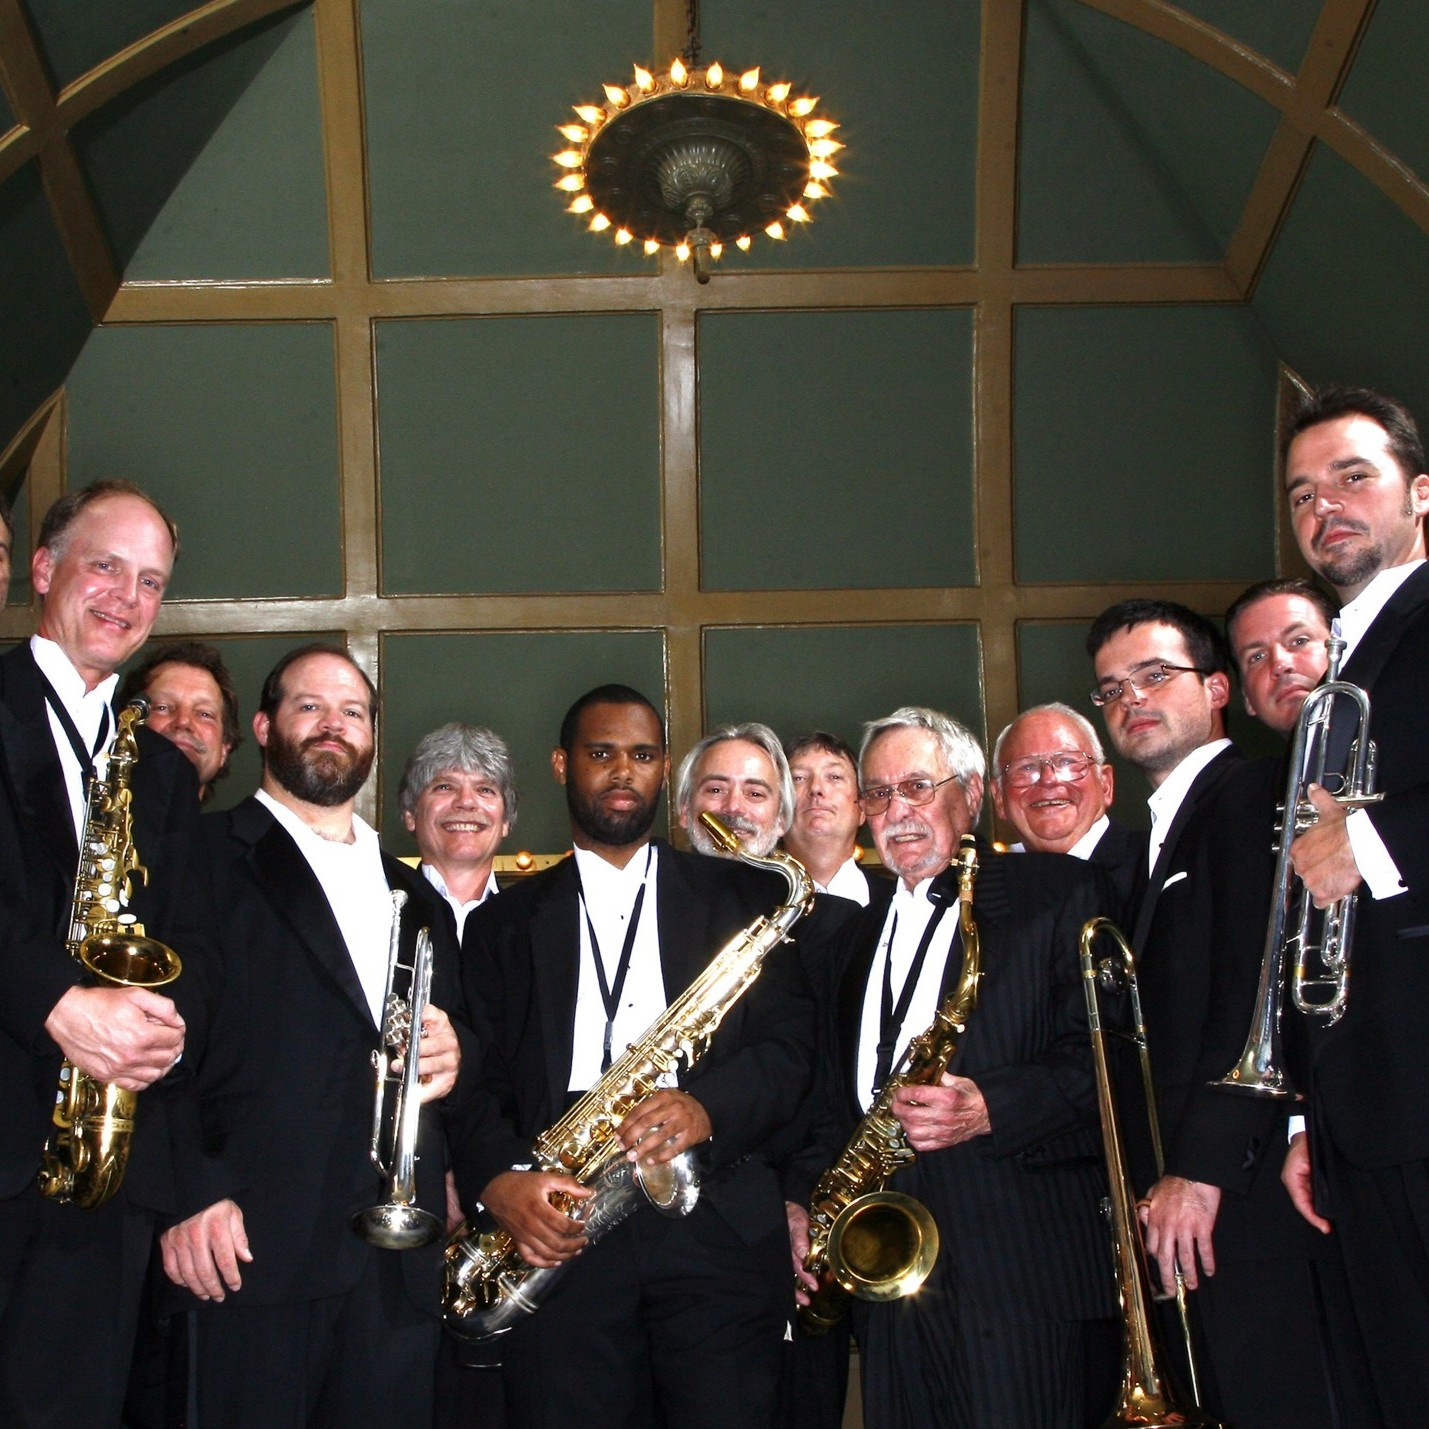 The Knoxville Jazz Orchestra's new album is called Christmas Time Is Here.